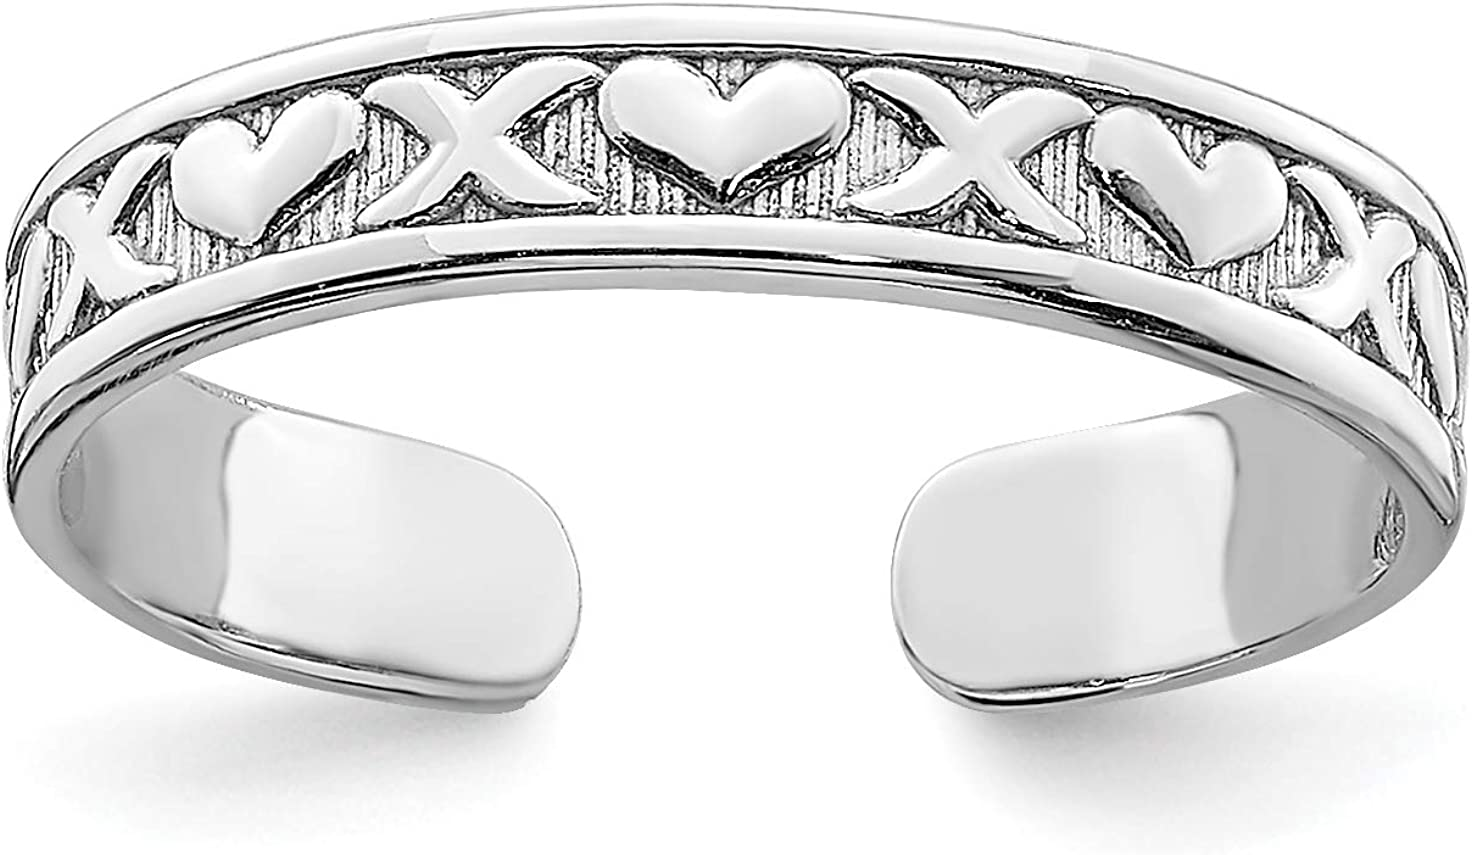 14k White Gold Alternating X and Hearts Pattern Toe Ring